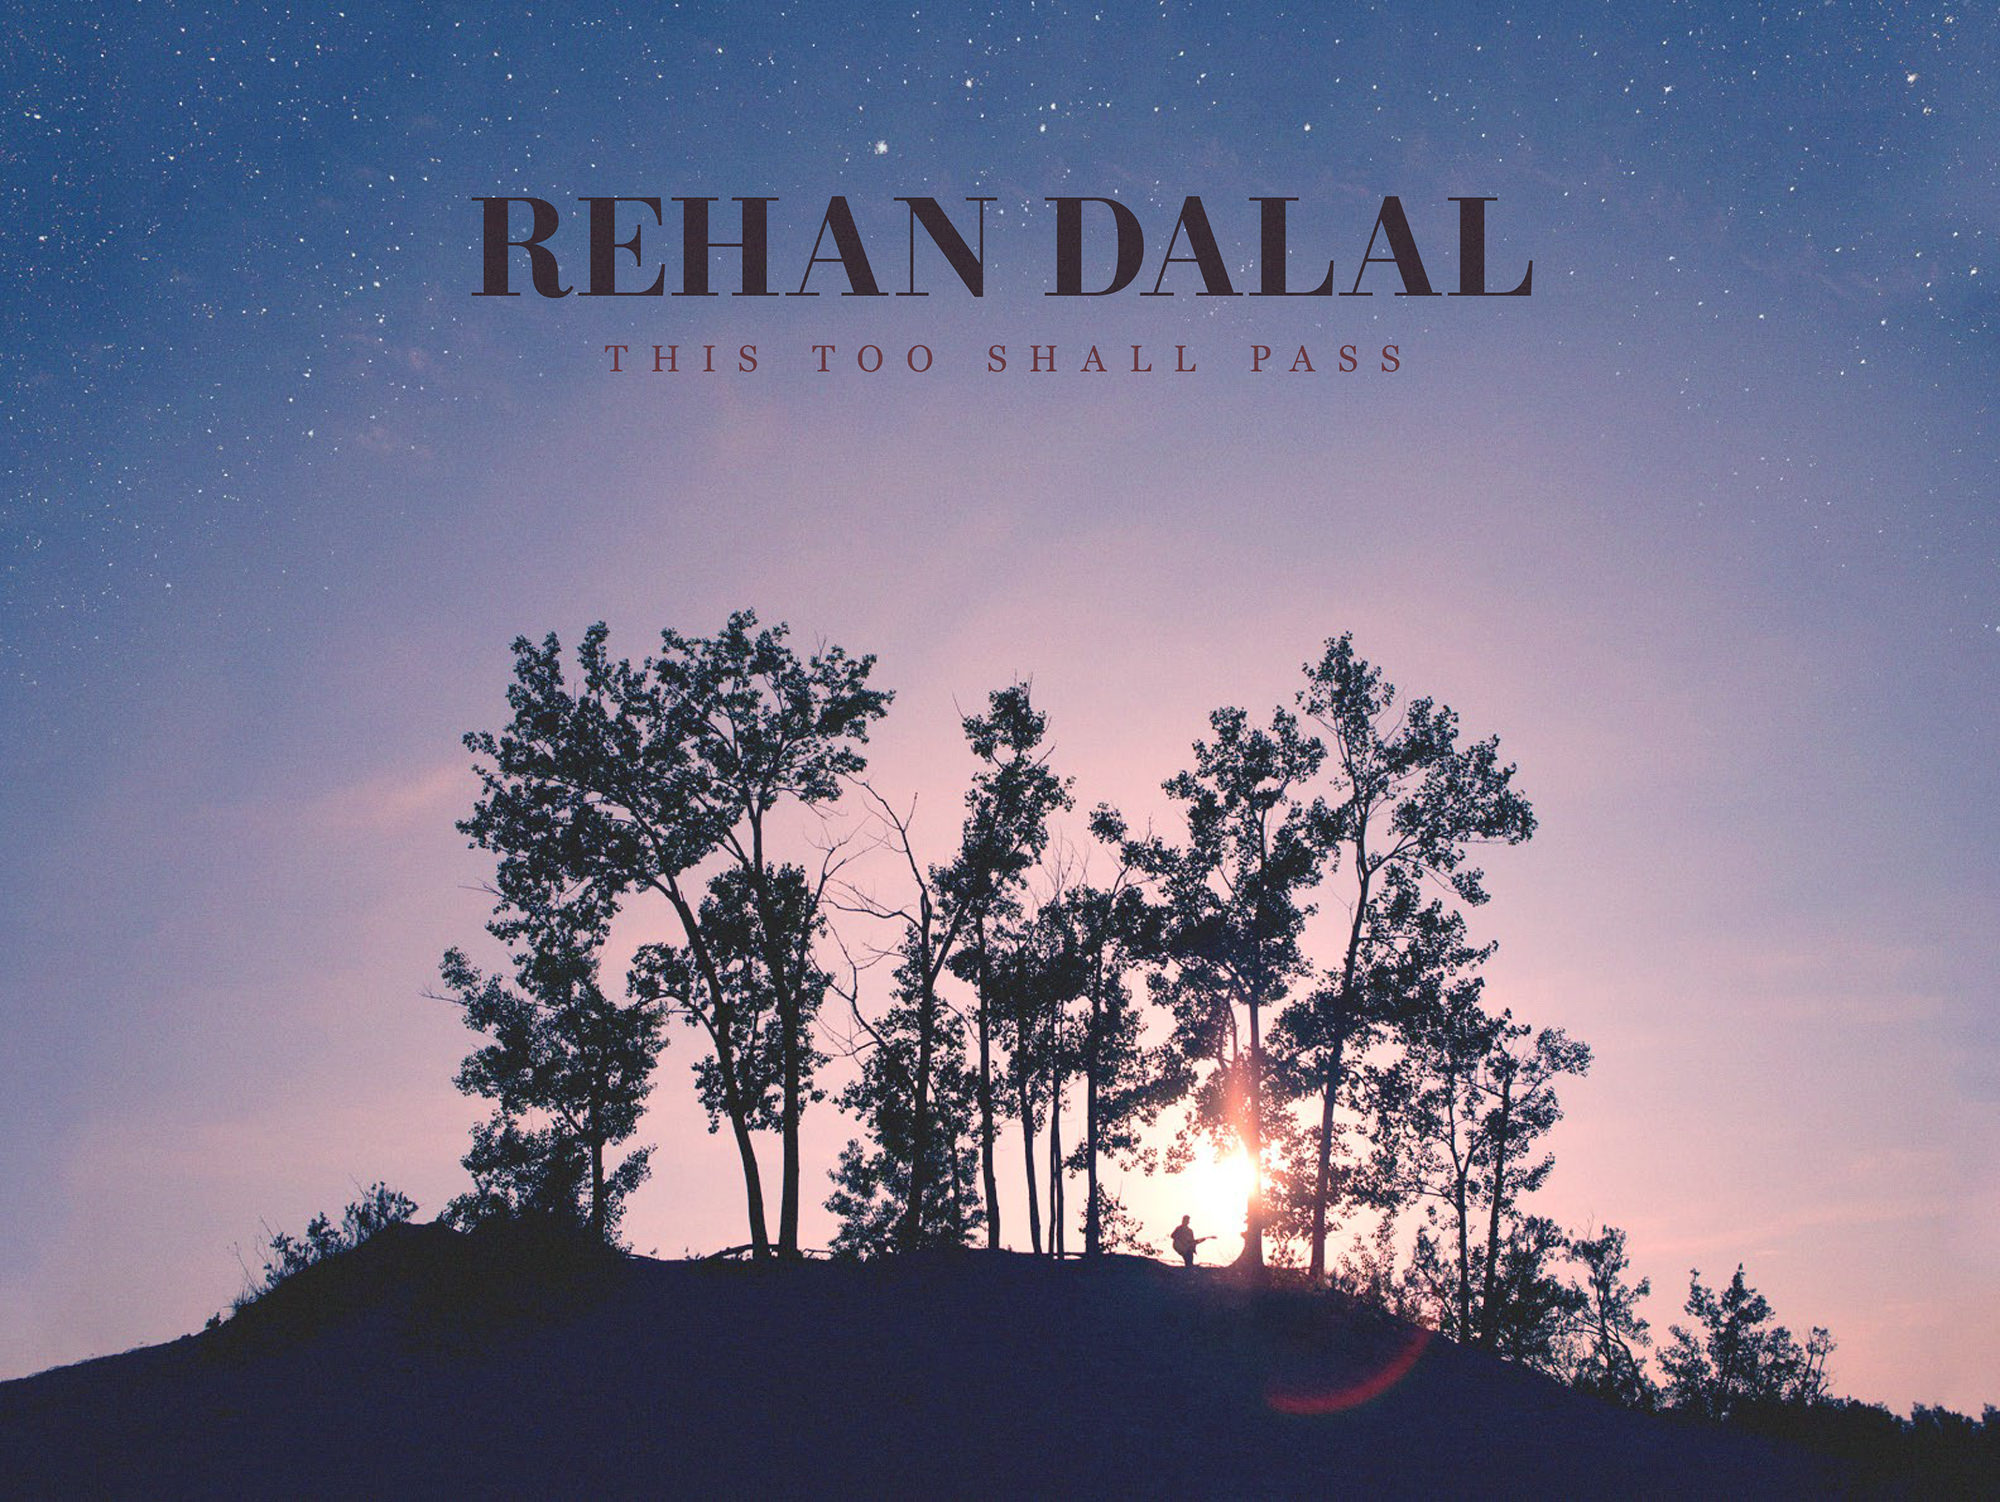 rehan-dalal-album-cover-this-too-shall-pass.jpg